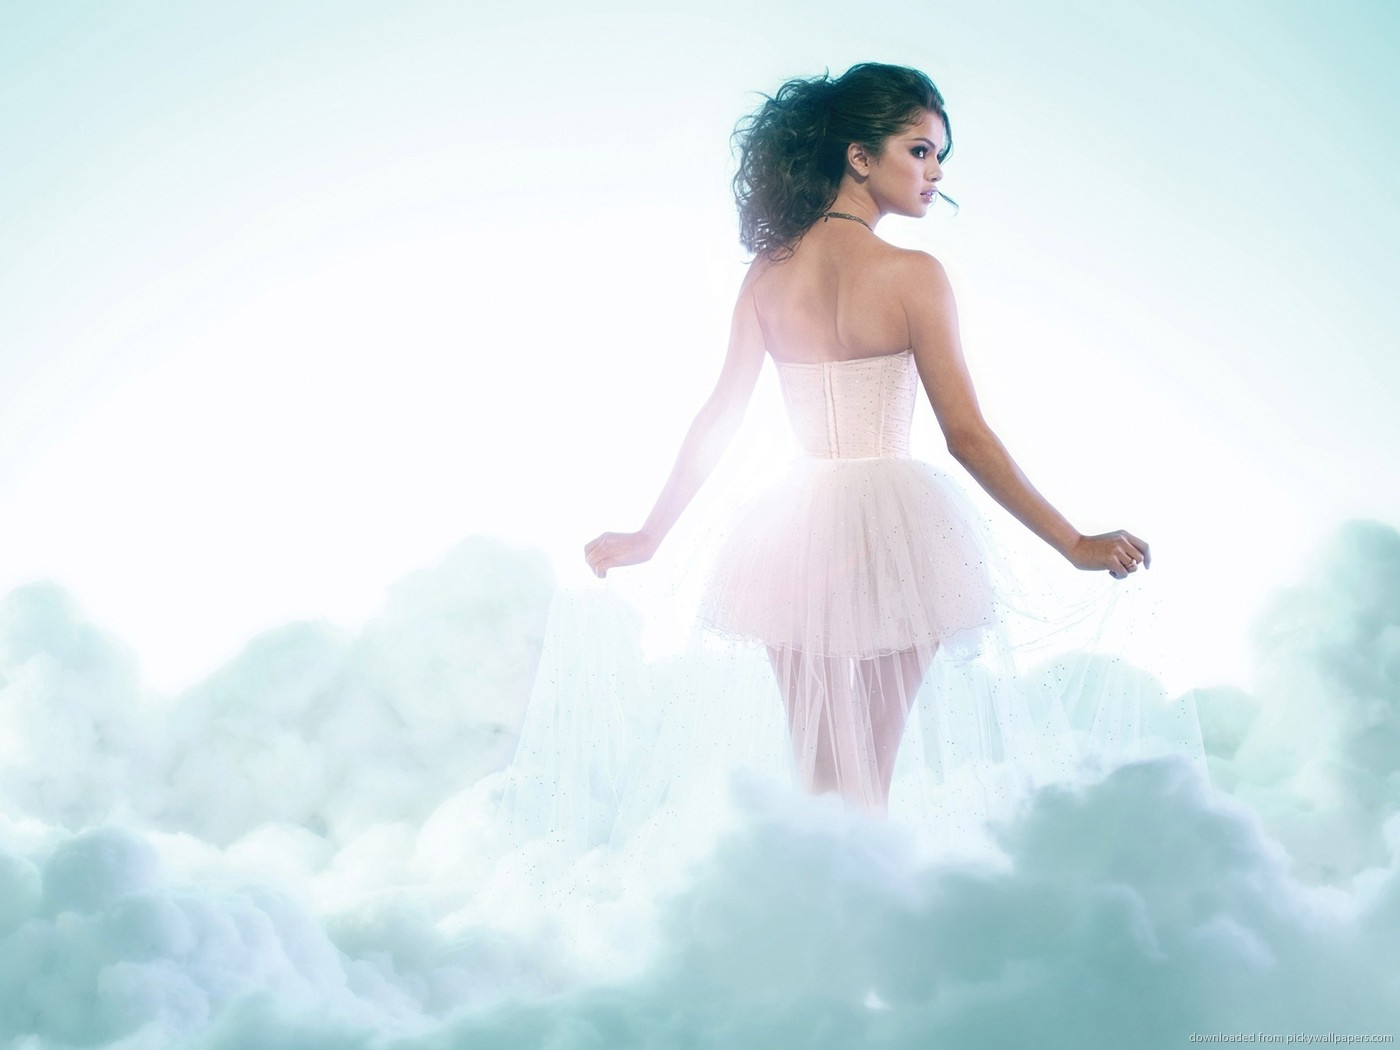 Selena gomez clouds